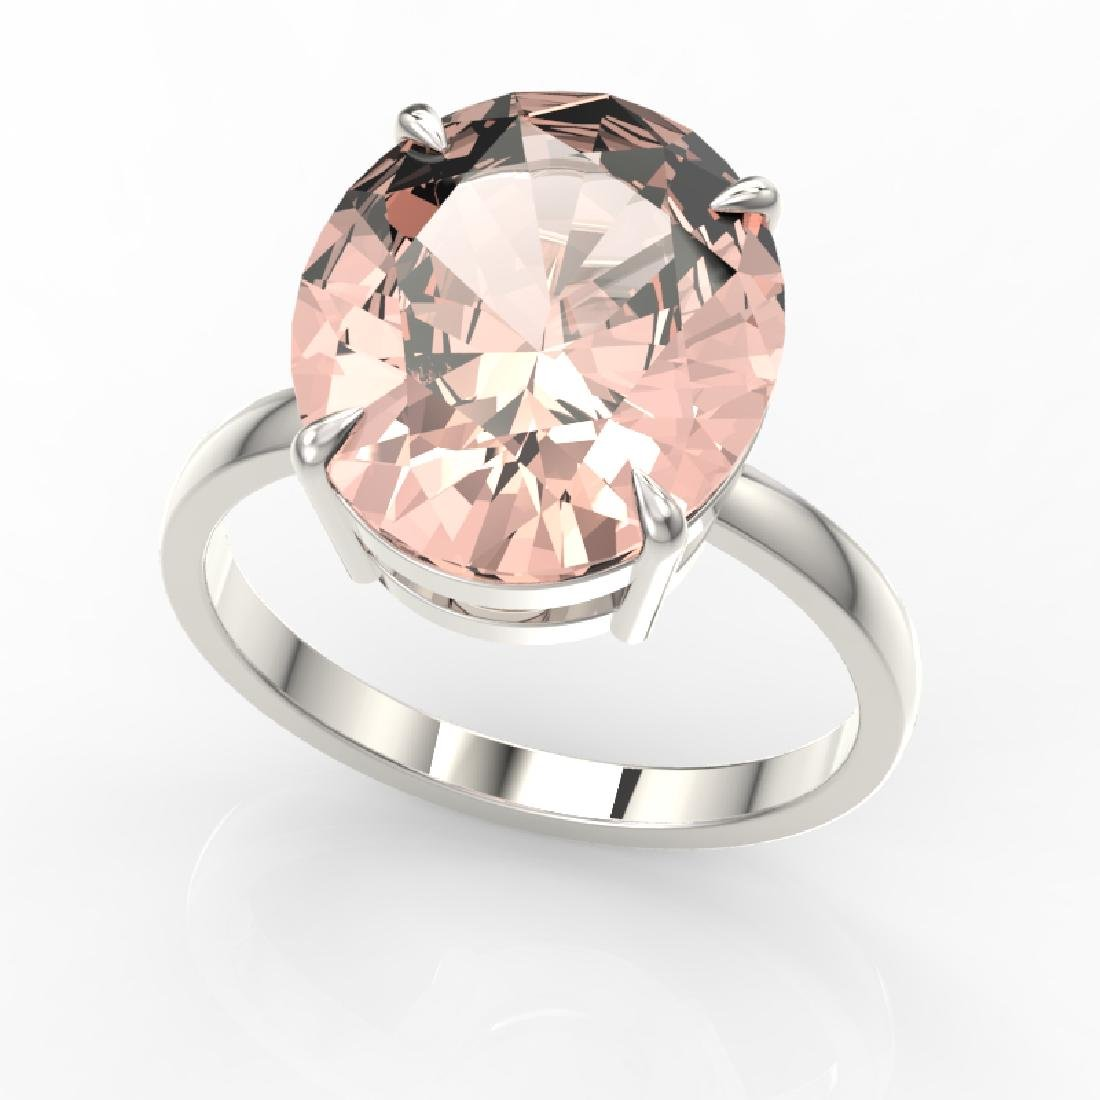 9 CTW Morganite Designer Solitaire Engagement Ring 18K - 2